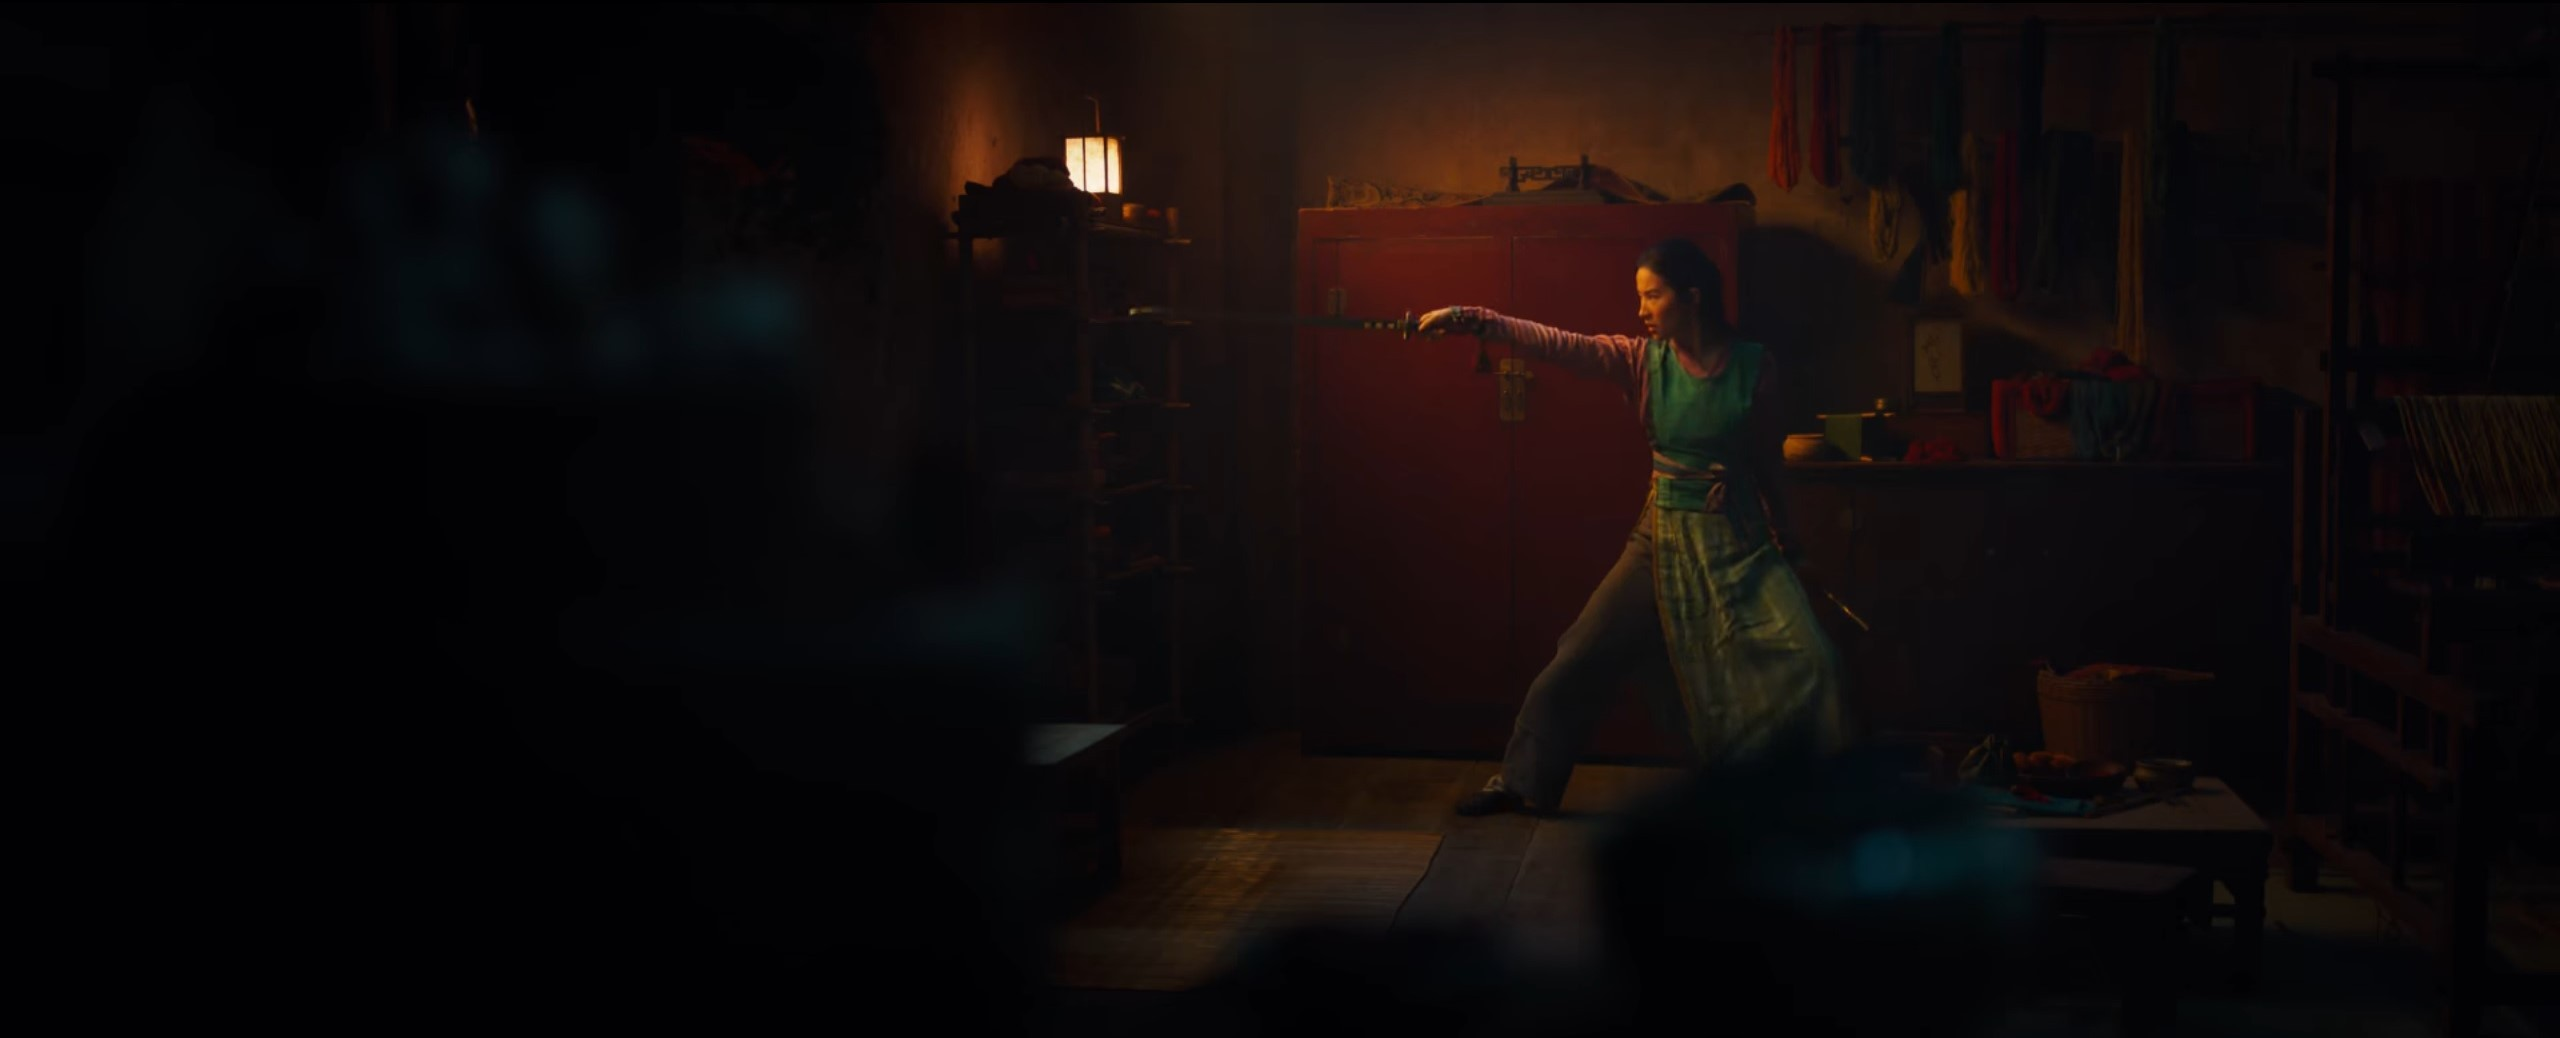 Mulan sparks different questions about Chinese identity in